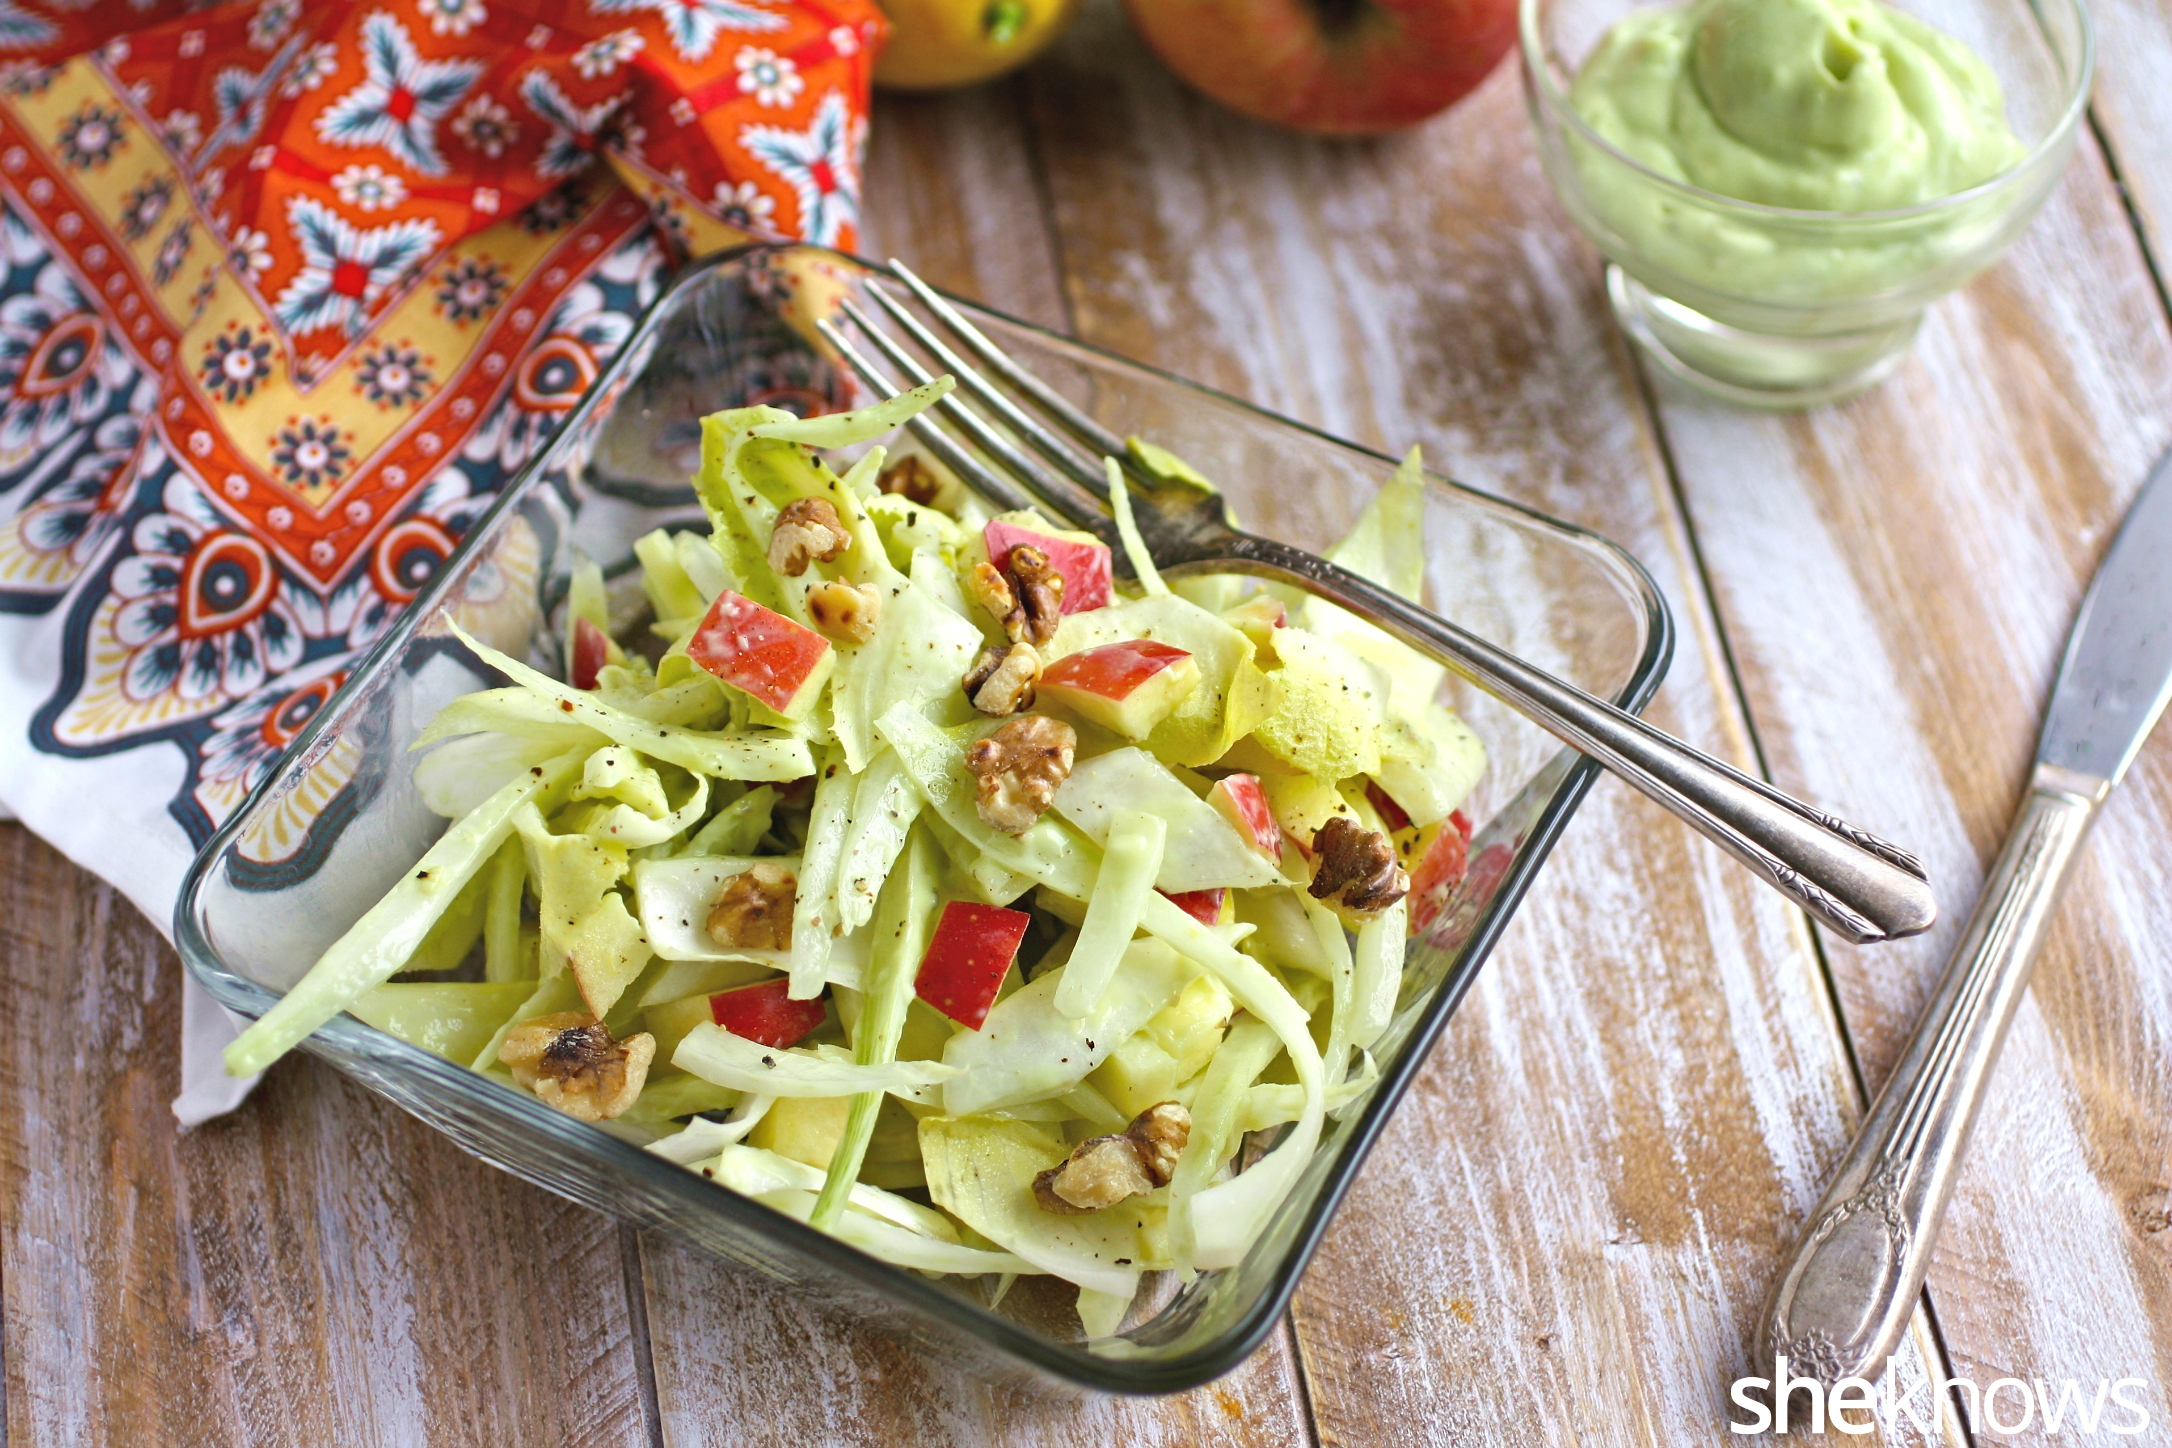 Perfect on a Meatless Monday: Fennel, apple, and endive salad with creamy lemon dressing